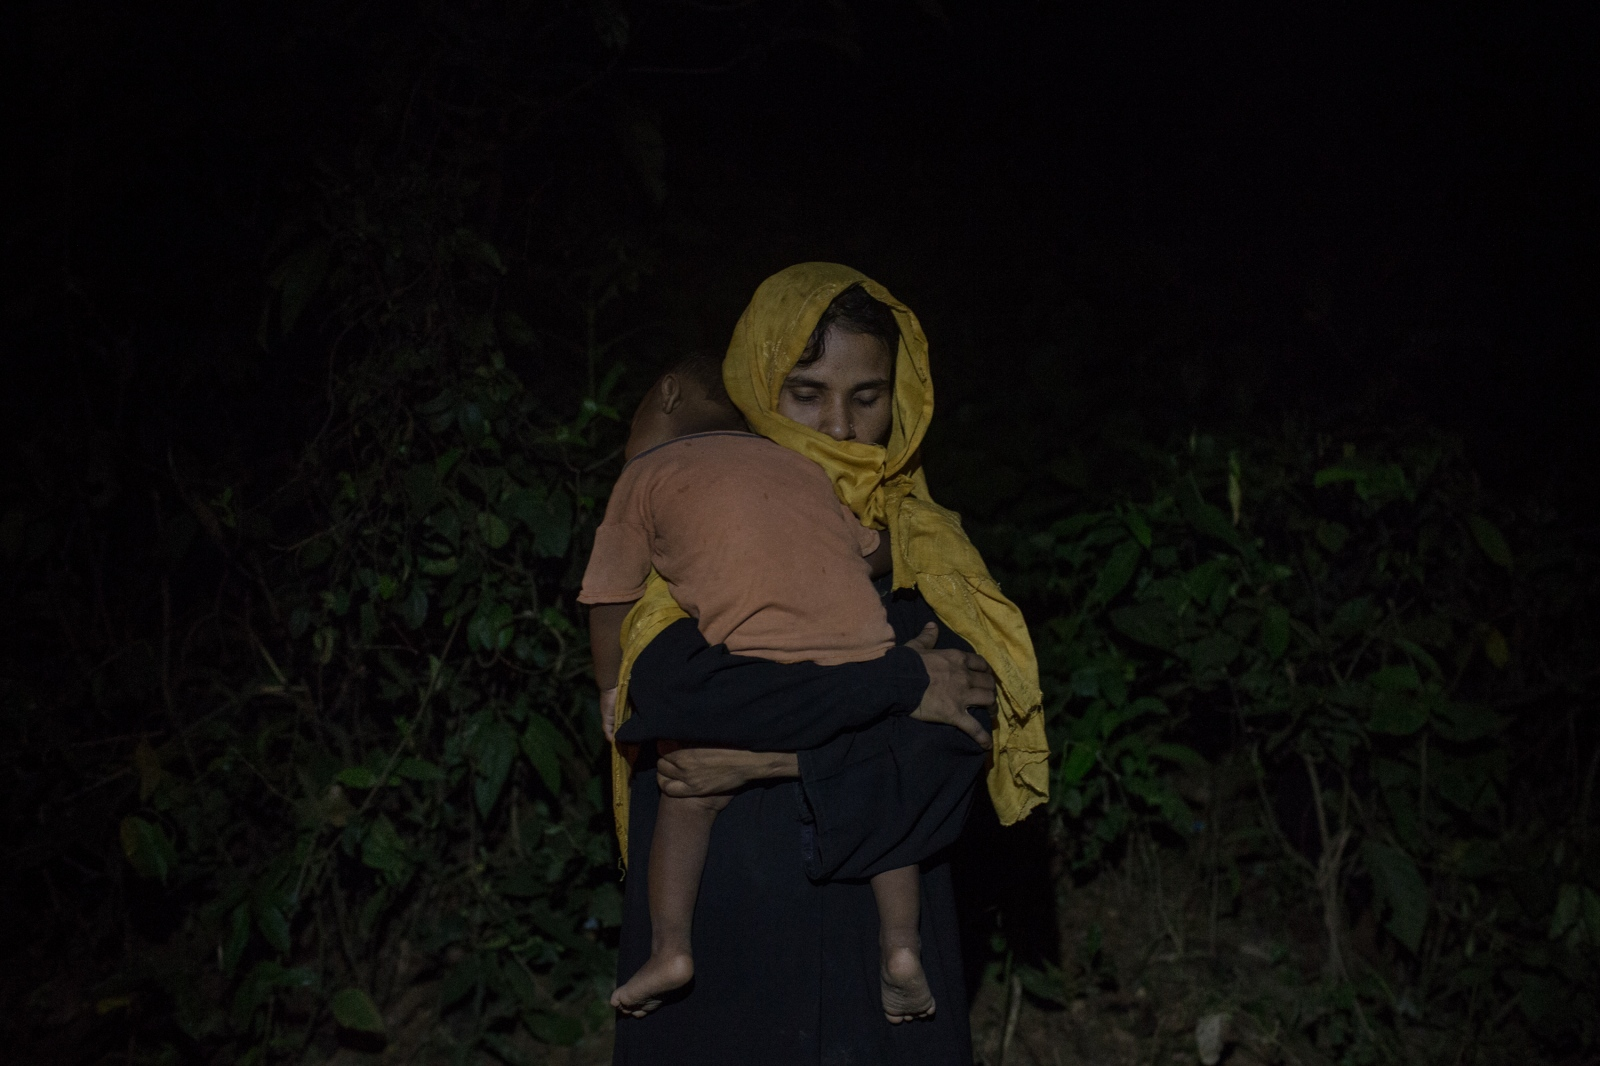 Kulsuma, 30, embraces her son while waiting by the side of the road for food and cash distributions near the Balukhali refugee camp in Bangladesh on Friday September 22, 2017. Kulsuma arrived in Bangladesh 8 days ago. She does not know the fate of her husband.